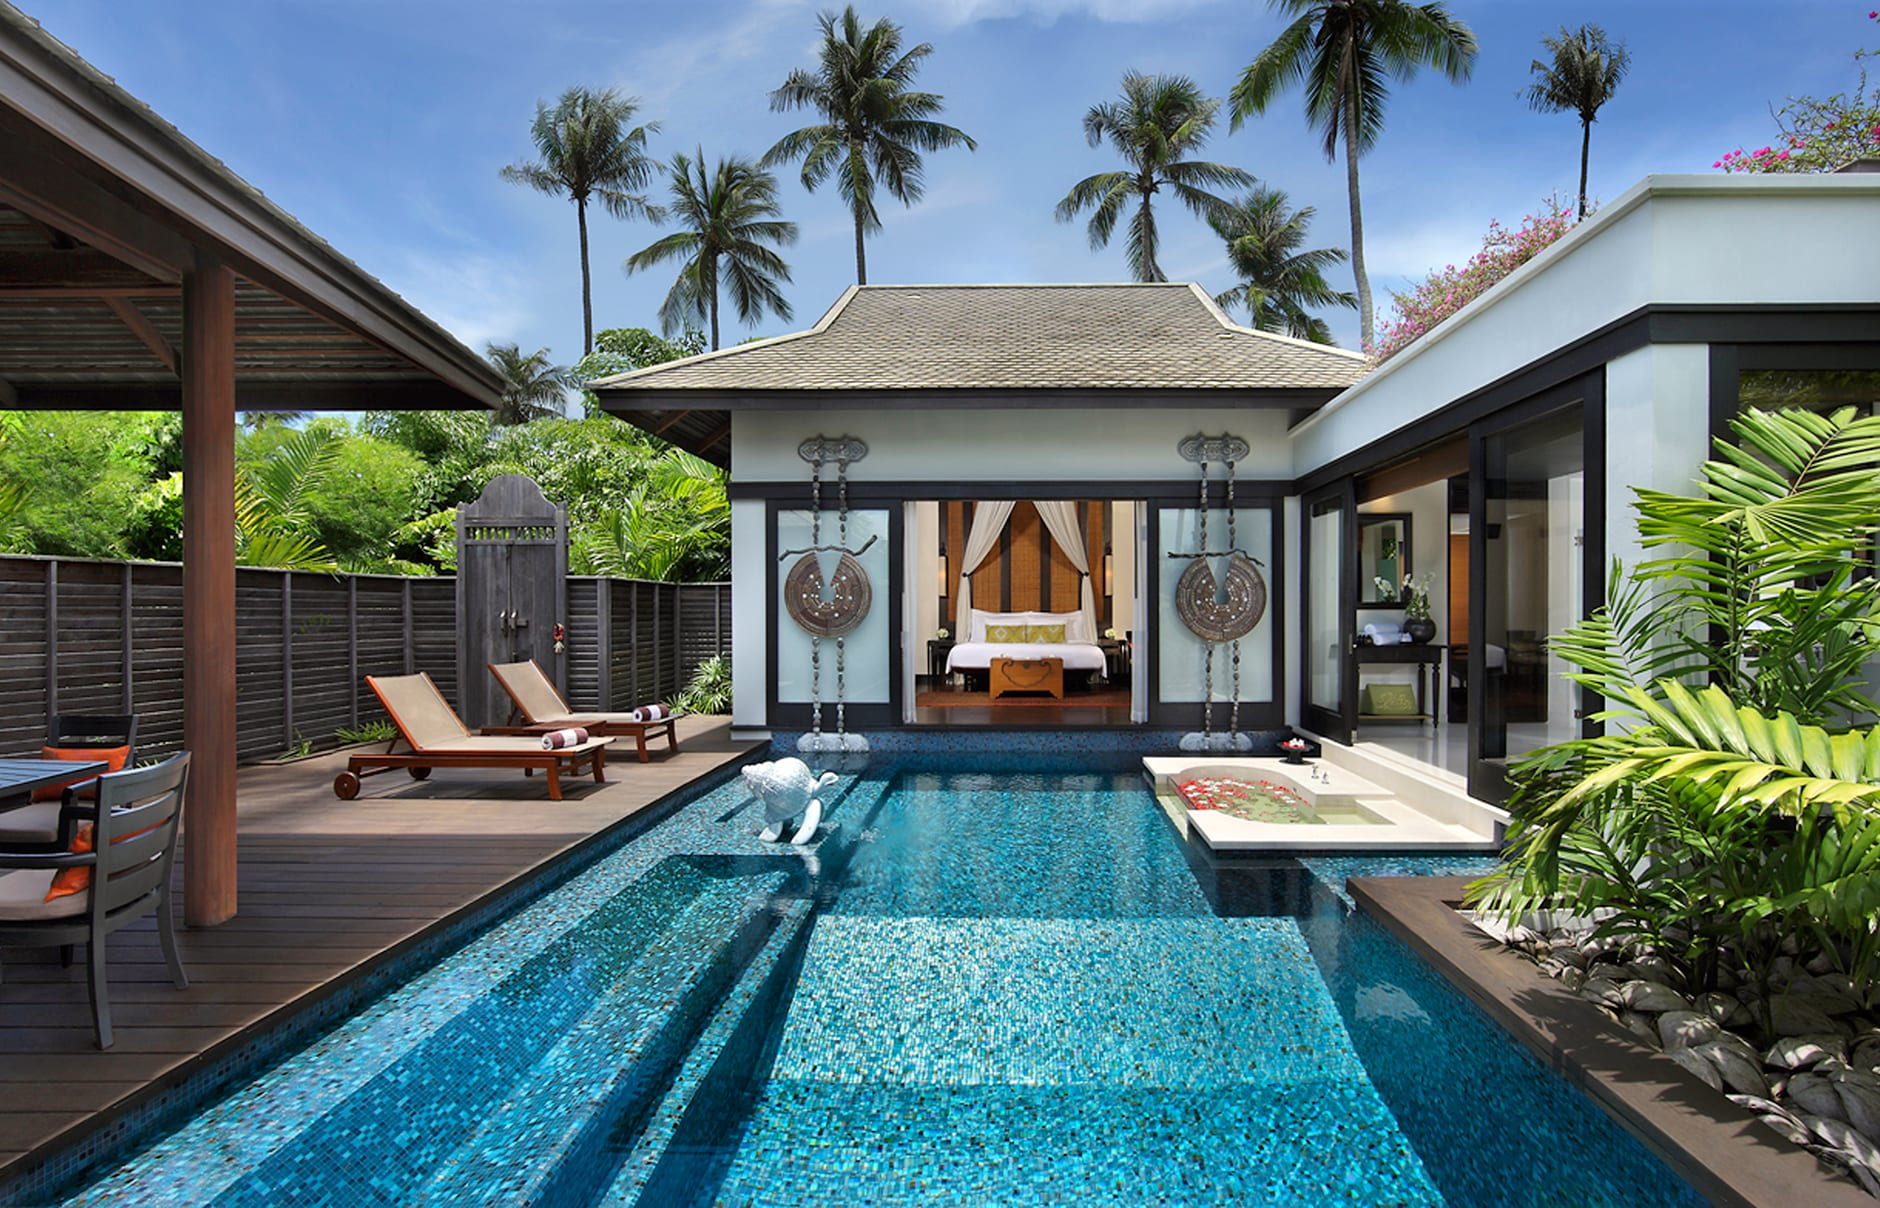 Anantara Phuket Villas 171 Luxury Hotels Travelplusstyle